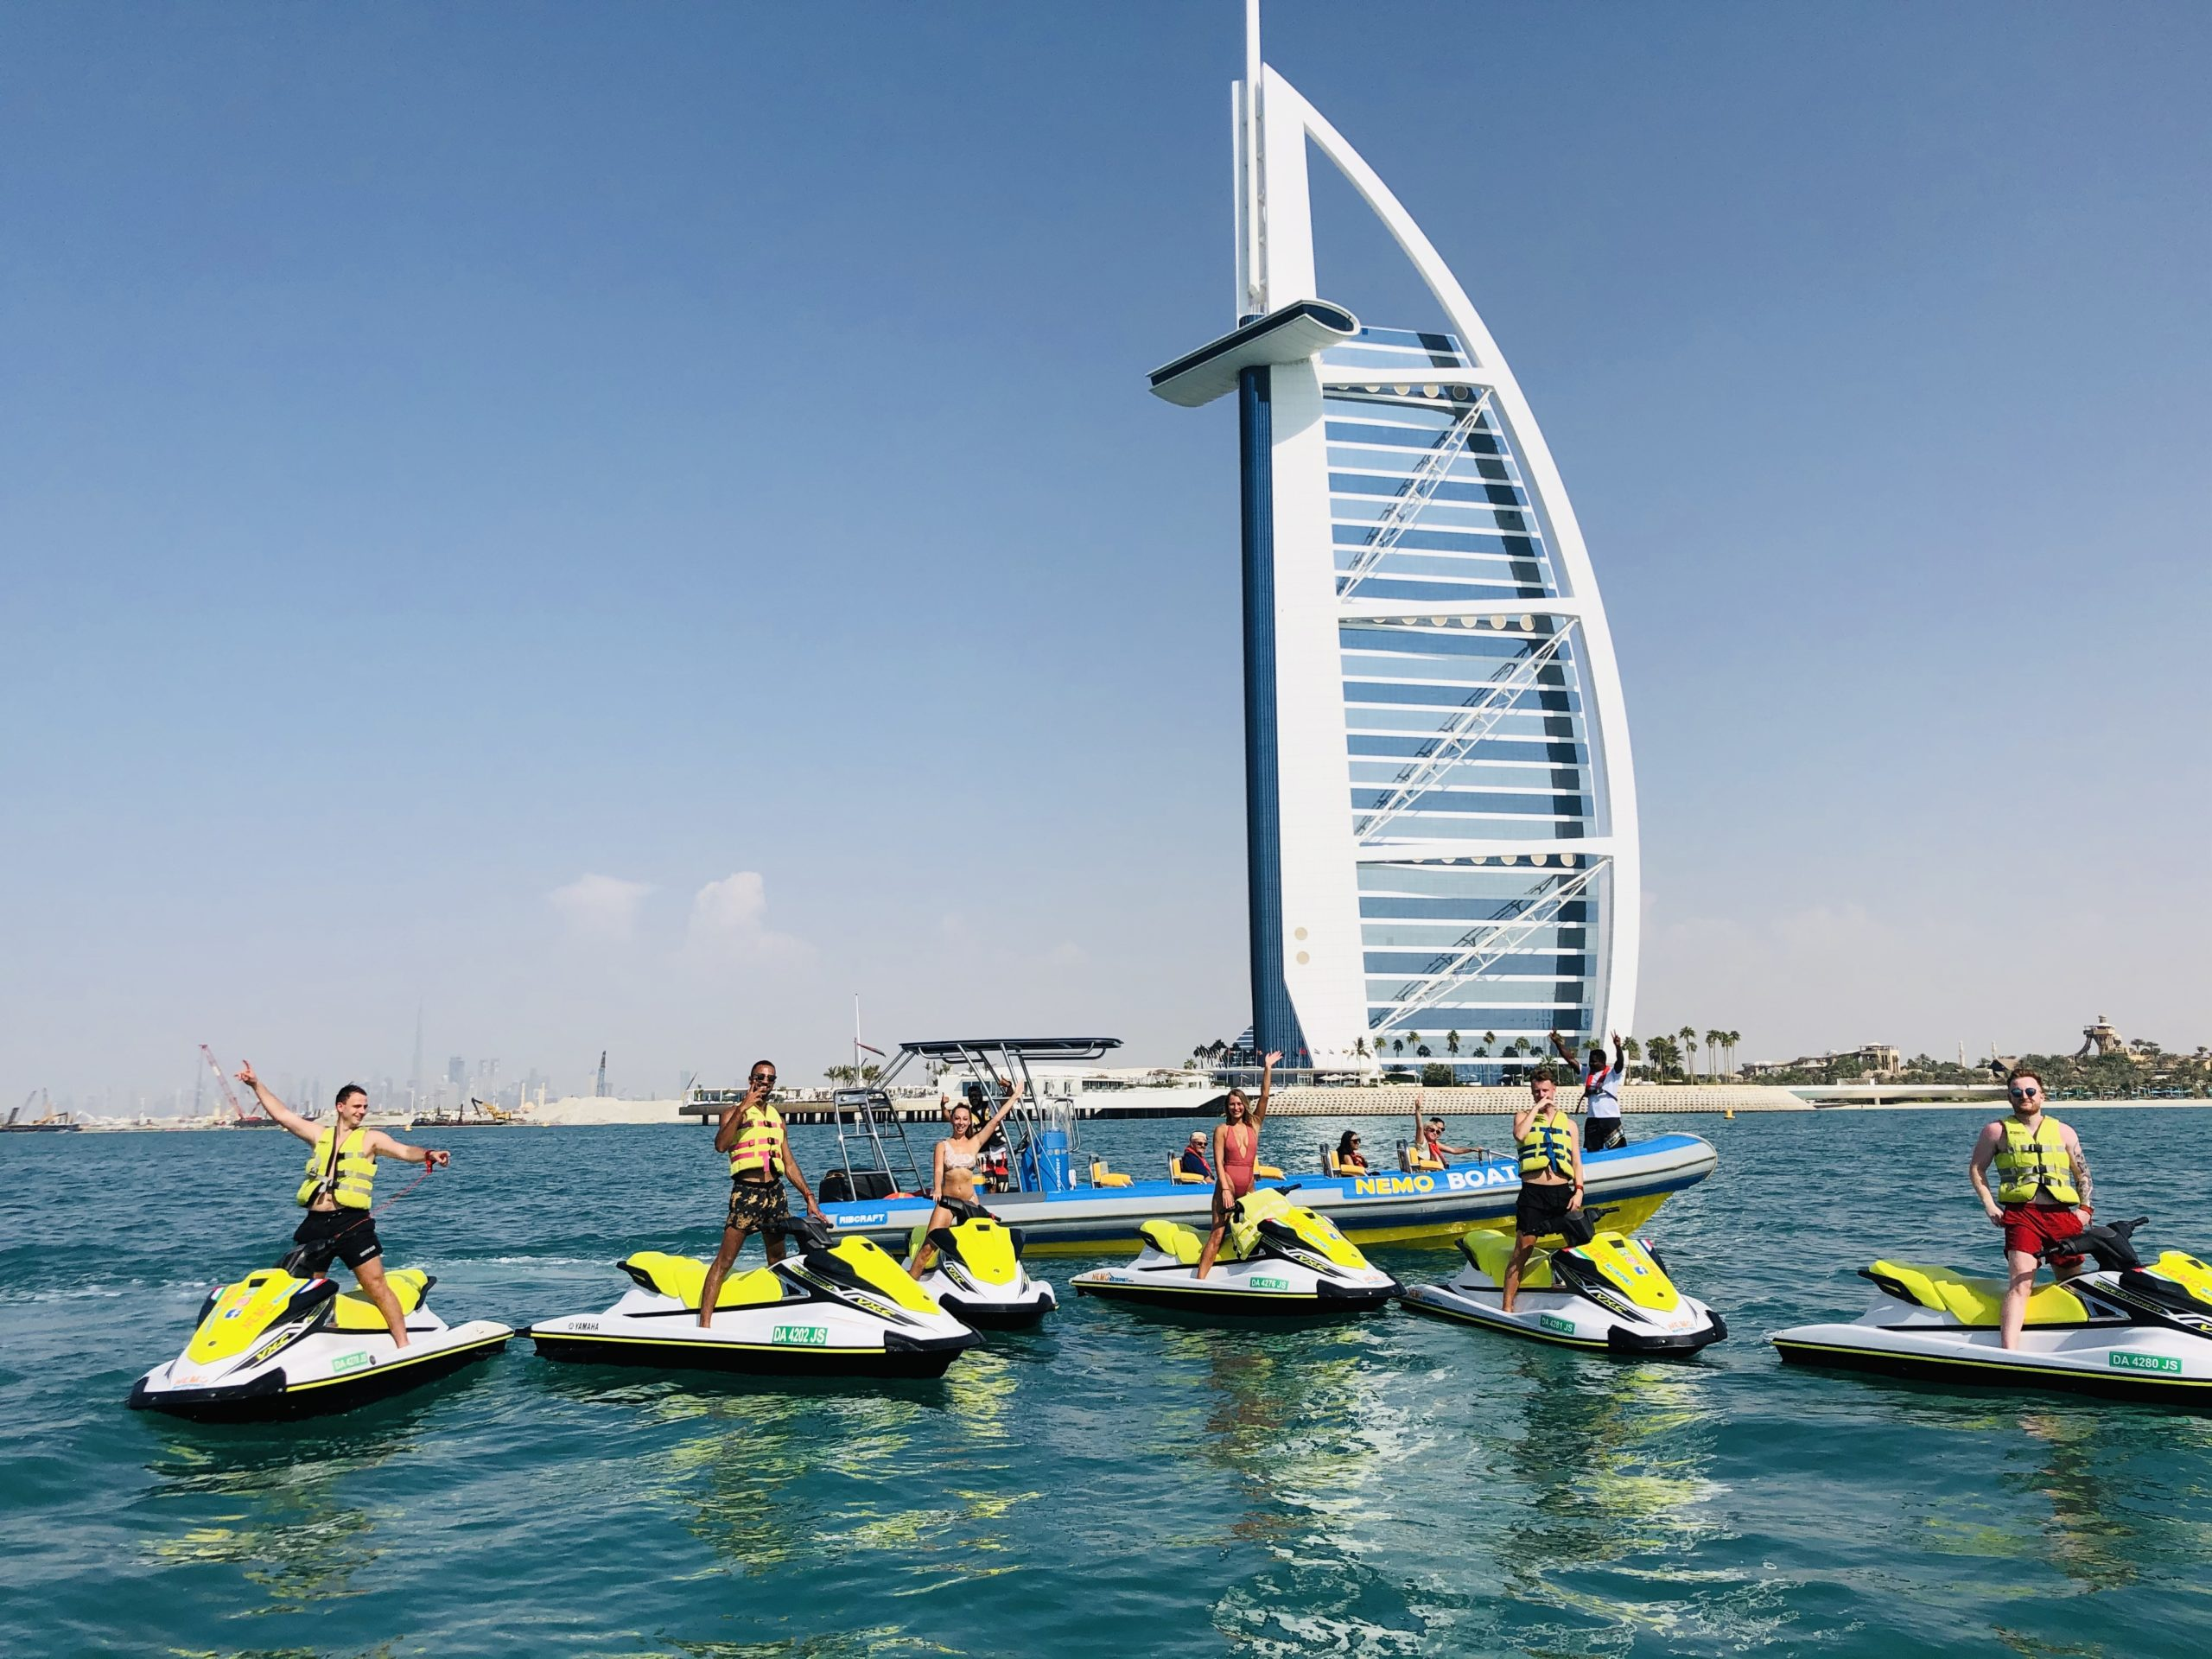 customers during a jet ski stop in front of the Burj Al Arab